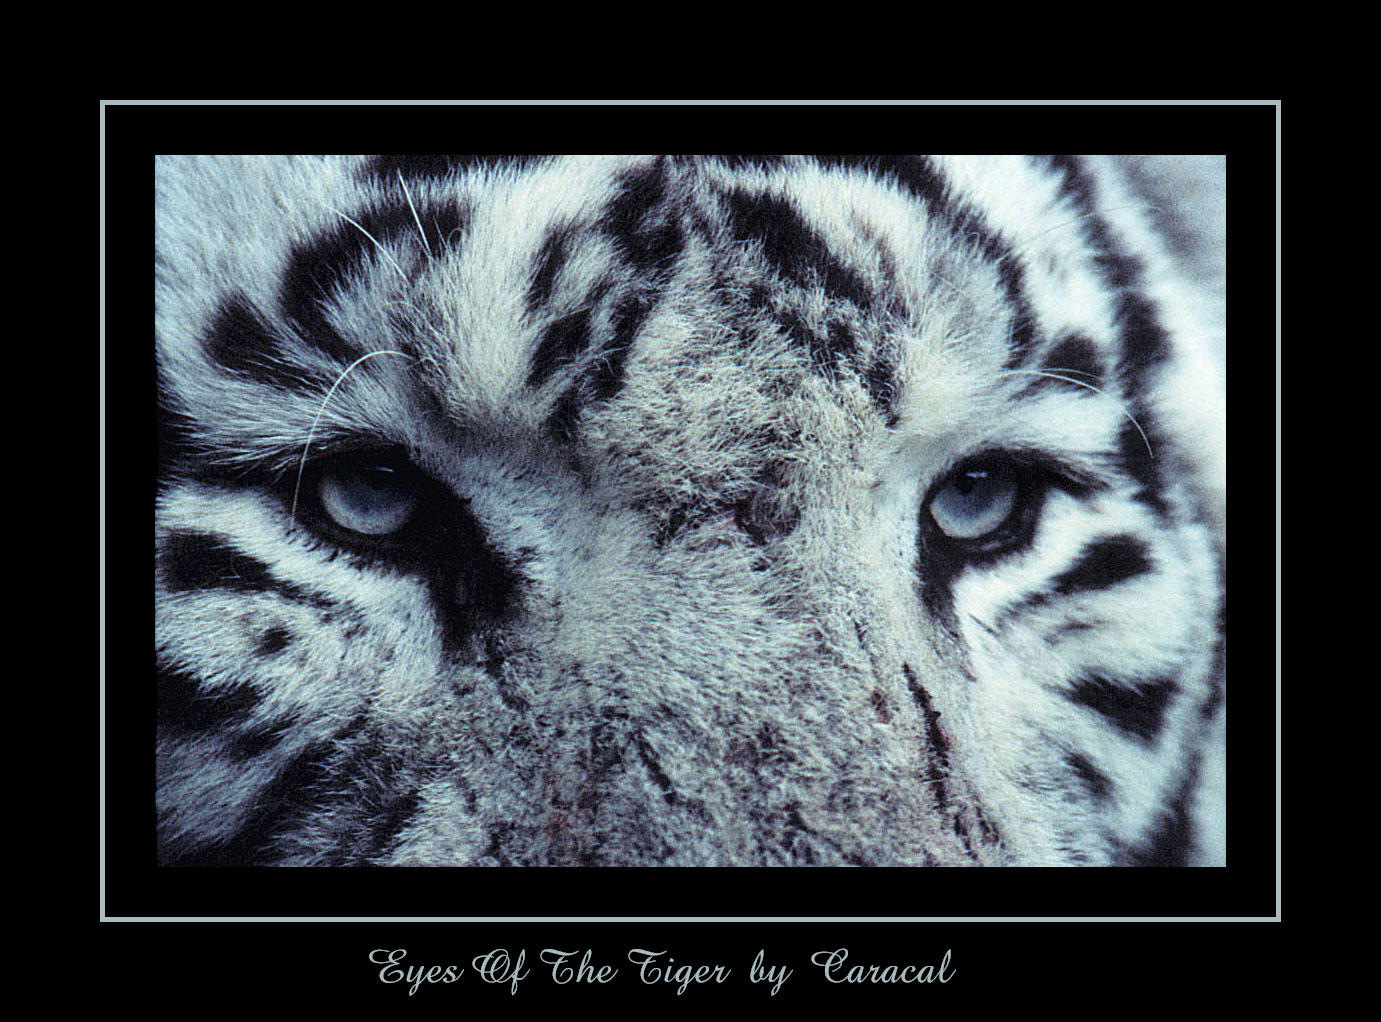 Eyes Of The Tiger by caracal